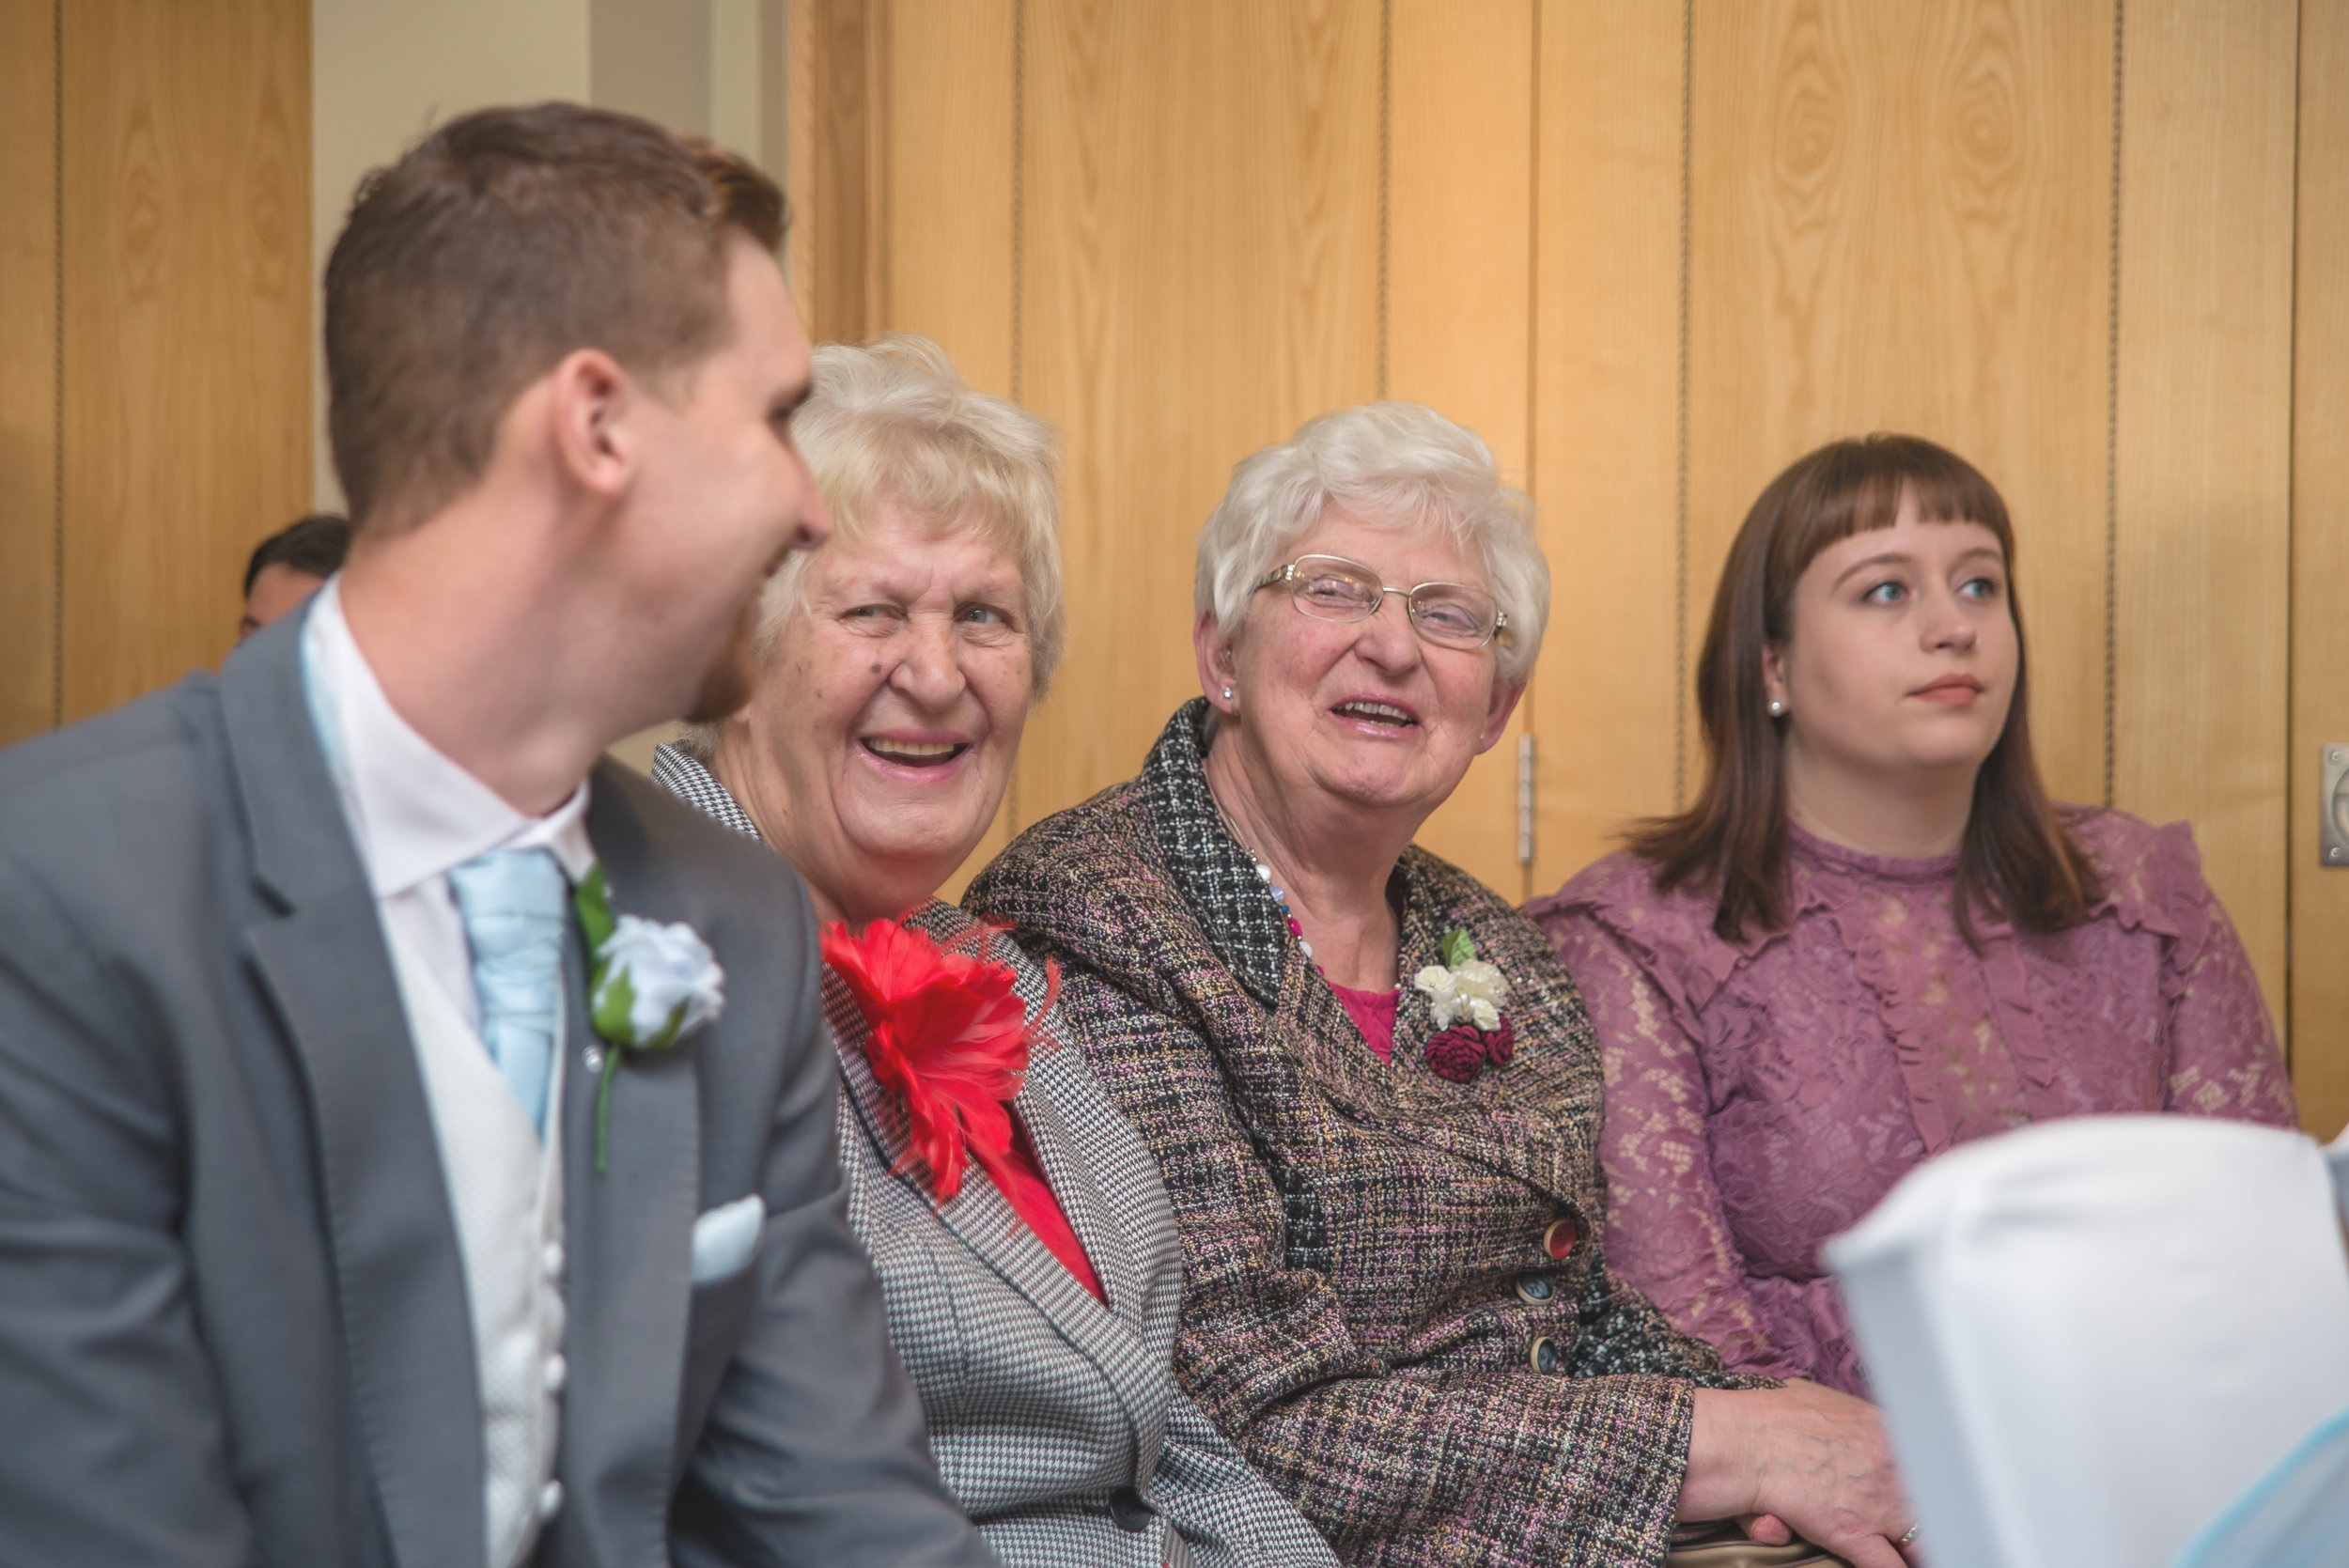 wedding photography, family grandmothers laughing